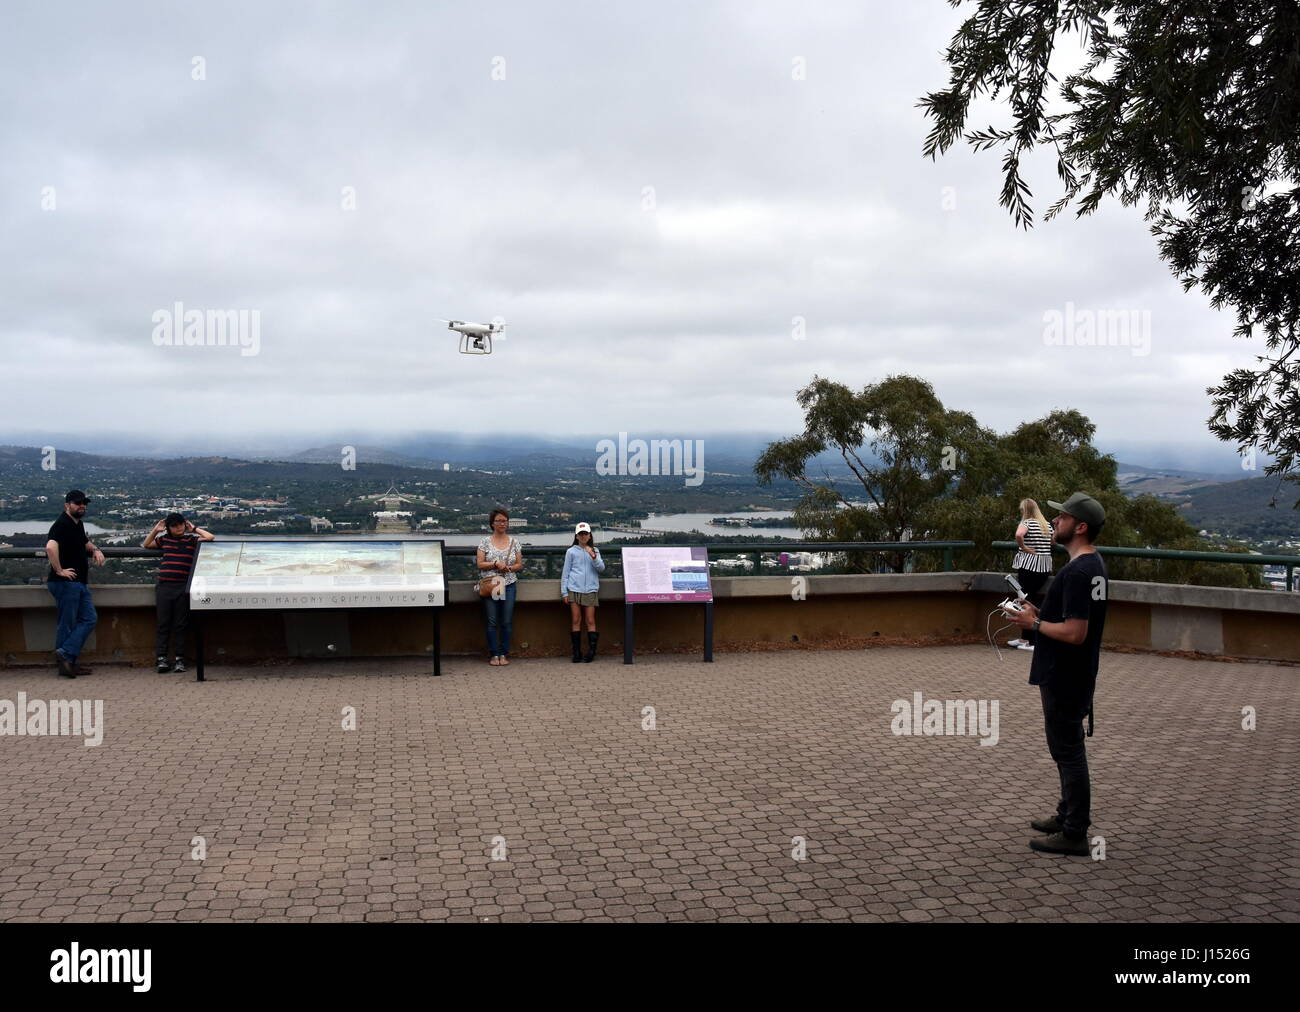 Canberra, Australia - March 19, 2017. A guy playing with a white drone at Mount Ainslie lookout. - Stock Image